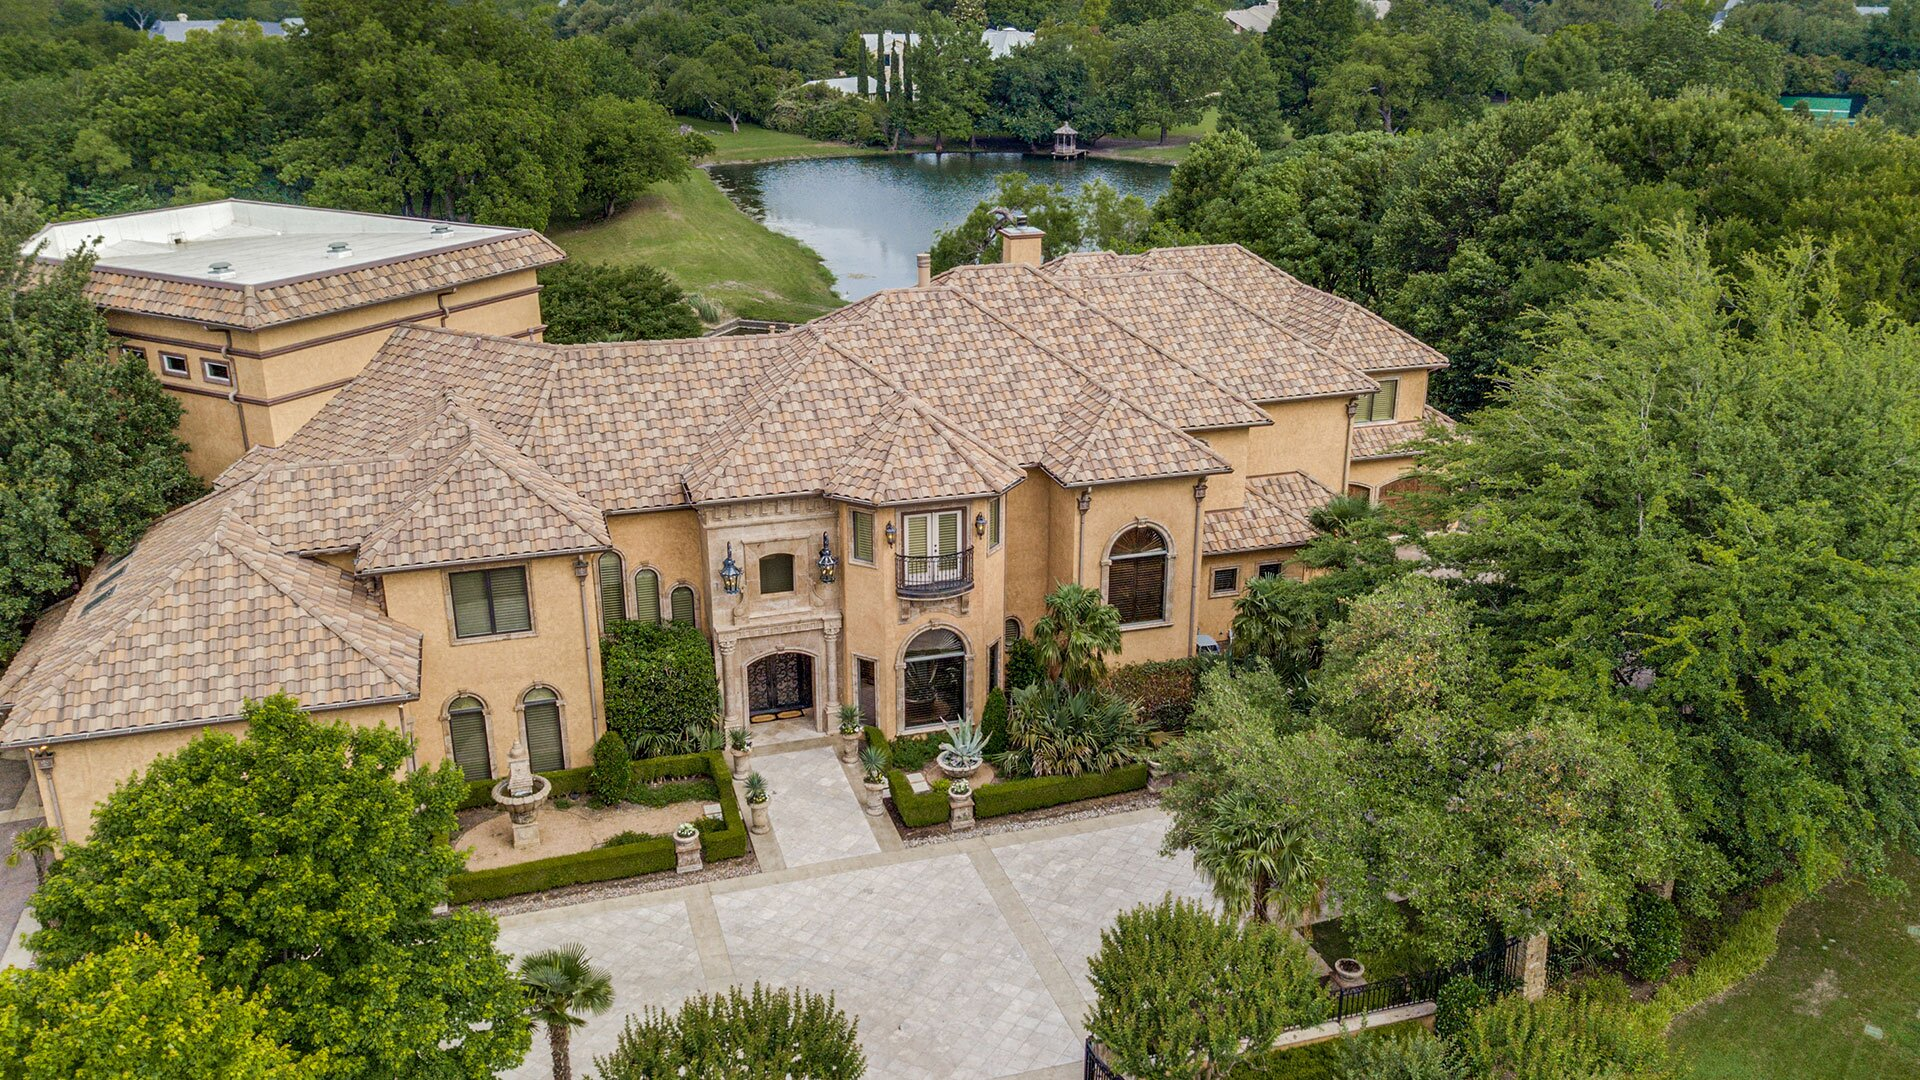 This Show-Stopping Texas Mansion Has a 90,000-Gallon Pool on nature house plans, dreams house plans, family house plans, bridge house plans, friends house plans, fishing house plans, life house plans, dogs house plans, yoga house plans, funny house plans, basketball house plans, the pearl house plans, painting house plans, love house plans, personal house plans, art house plans, water house plans,